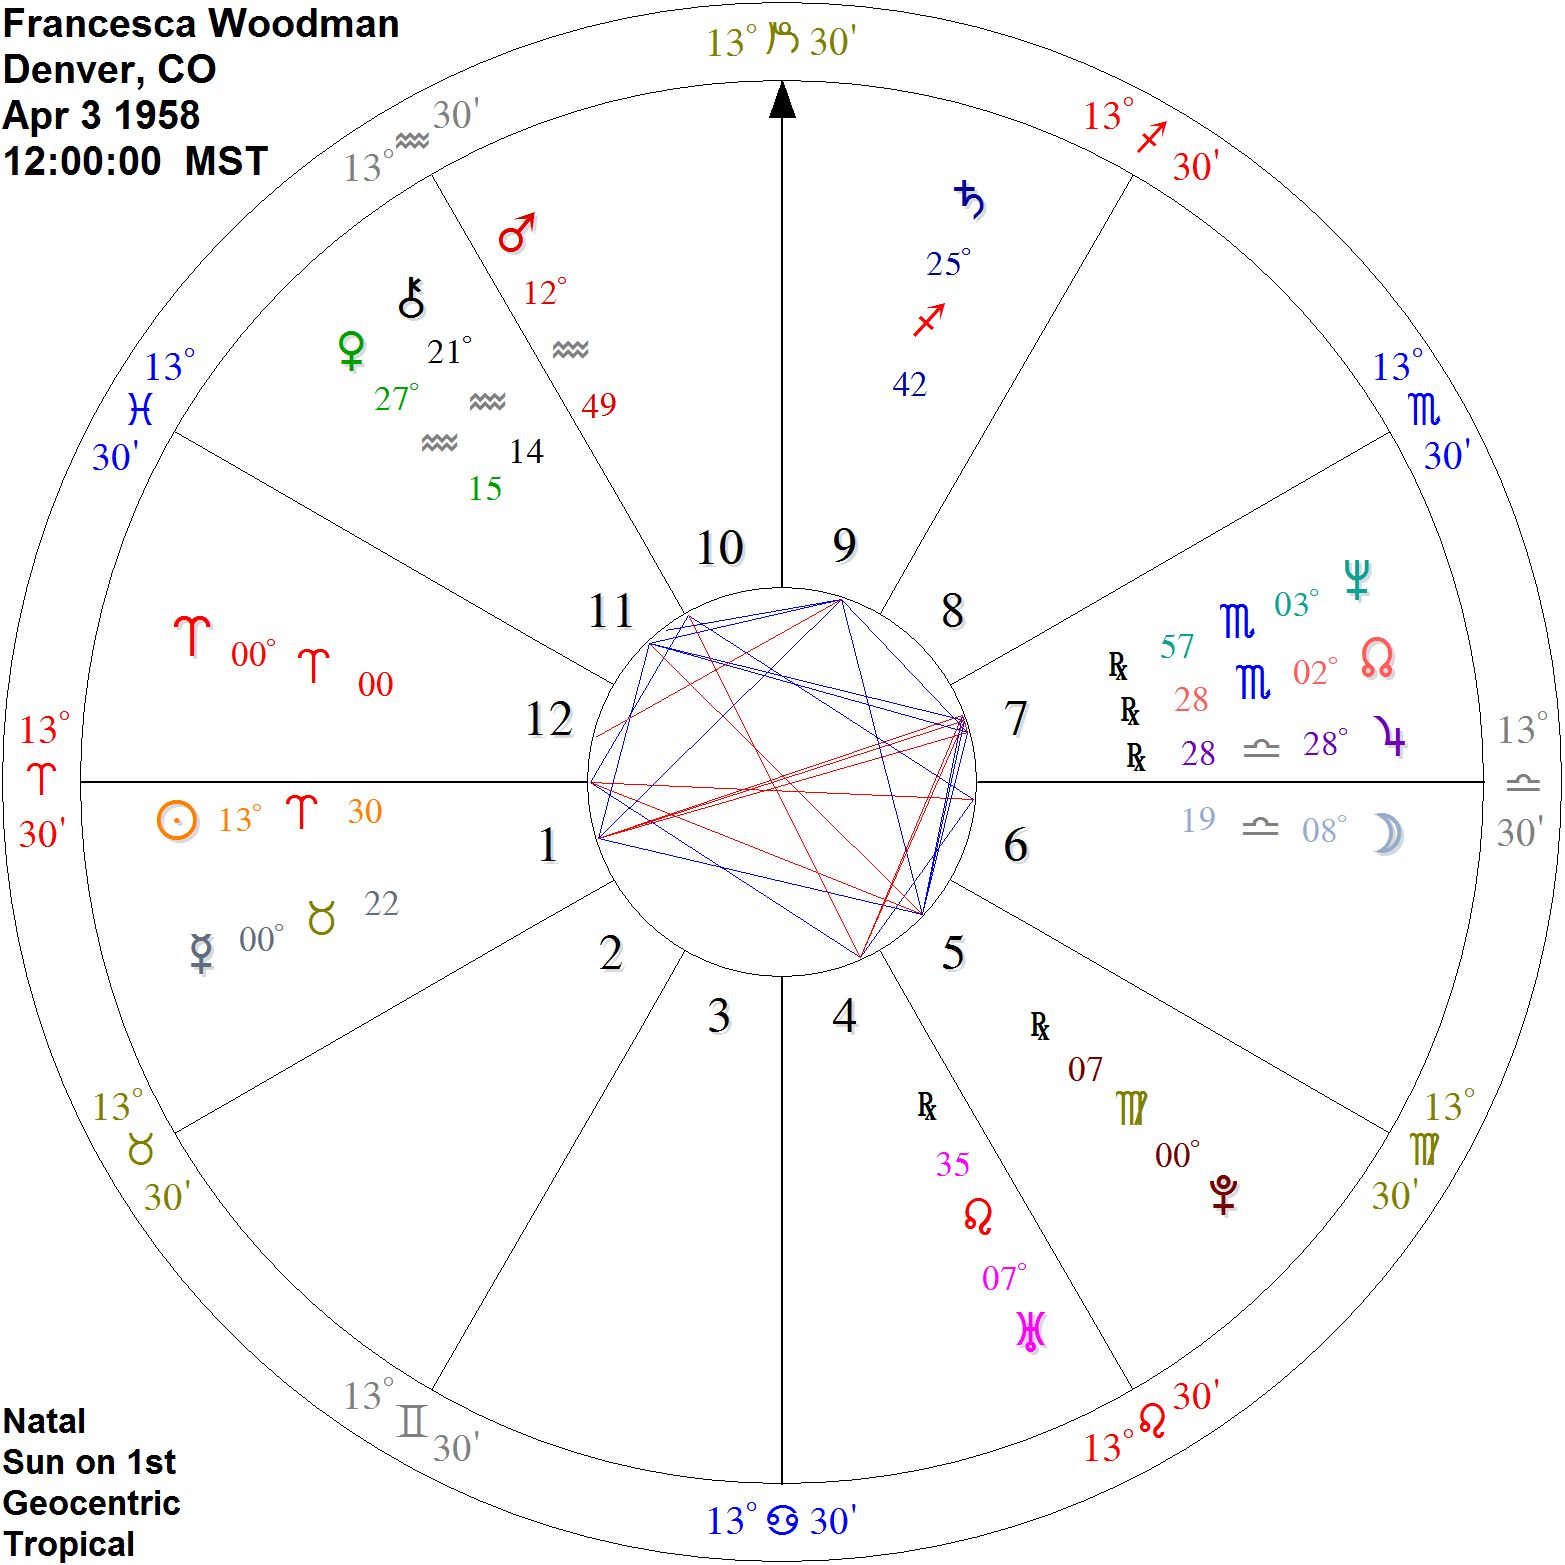 Urania designs blog placements i note first are francescas exalted sun in aries in opposition to a bright full moon in the venus ruled sign libra will versus feeling nvjuhfo Choice Image